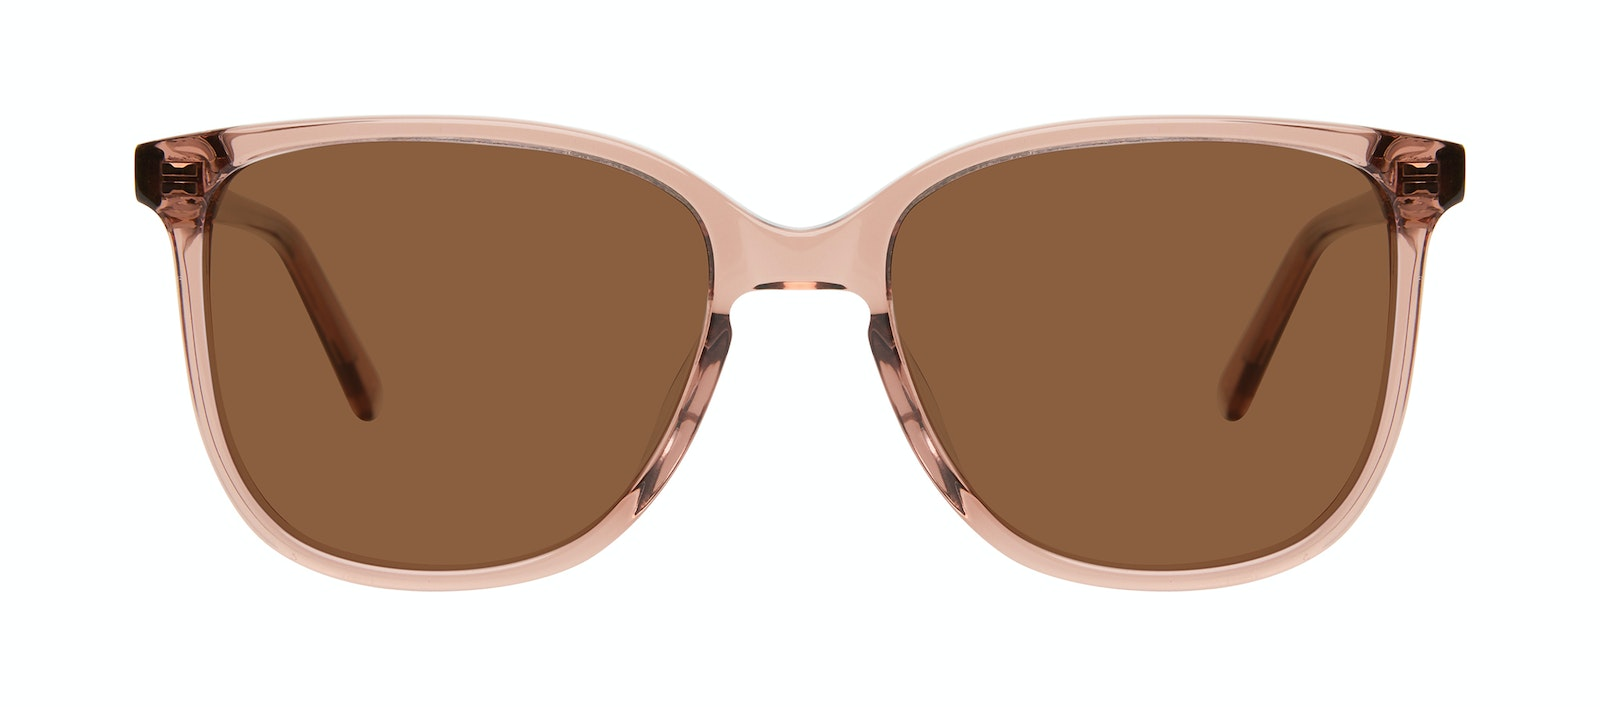 Affordable Fashion Glasses Square Sunglasses Women Lead Rose Front